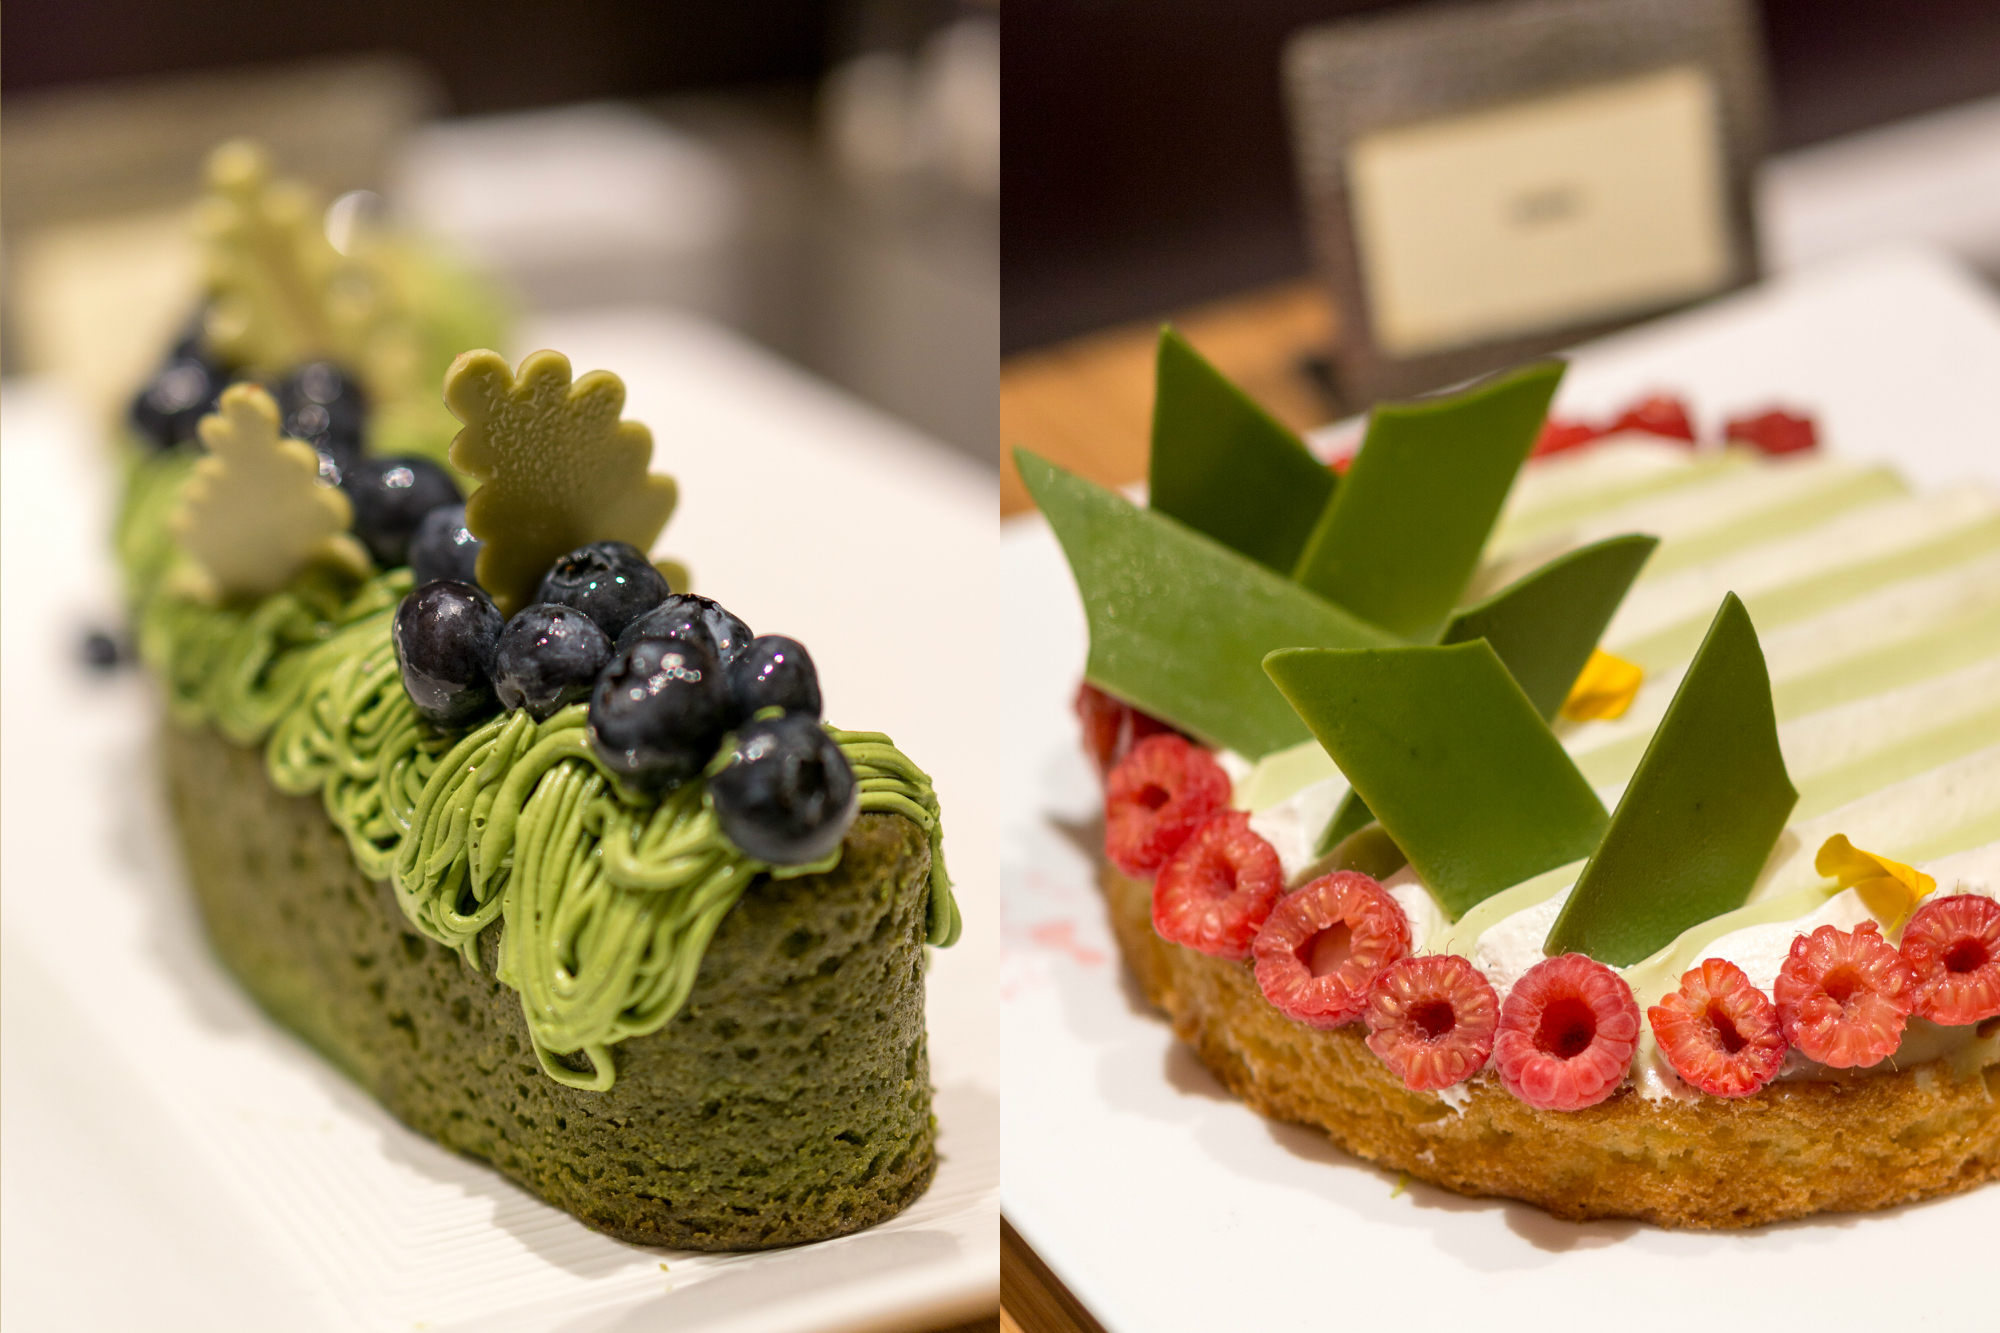 Indian Food Festival at Melt Cafe Mandarin Oriental Singapore - Green Tea Cake and Sable